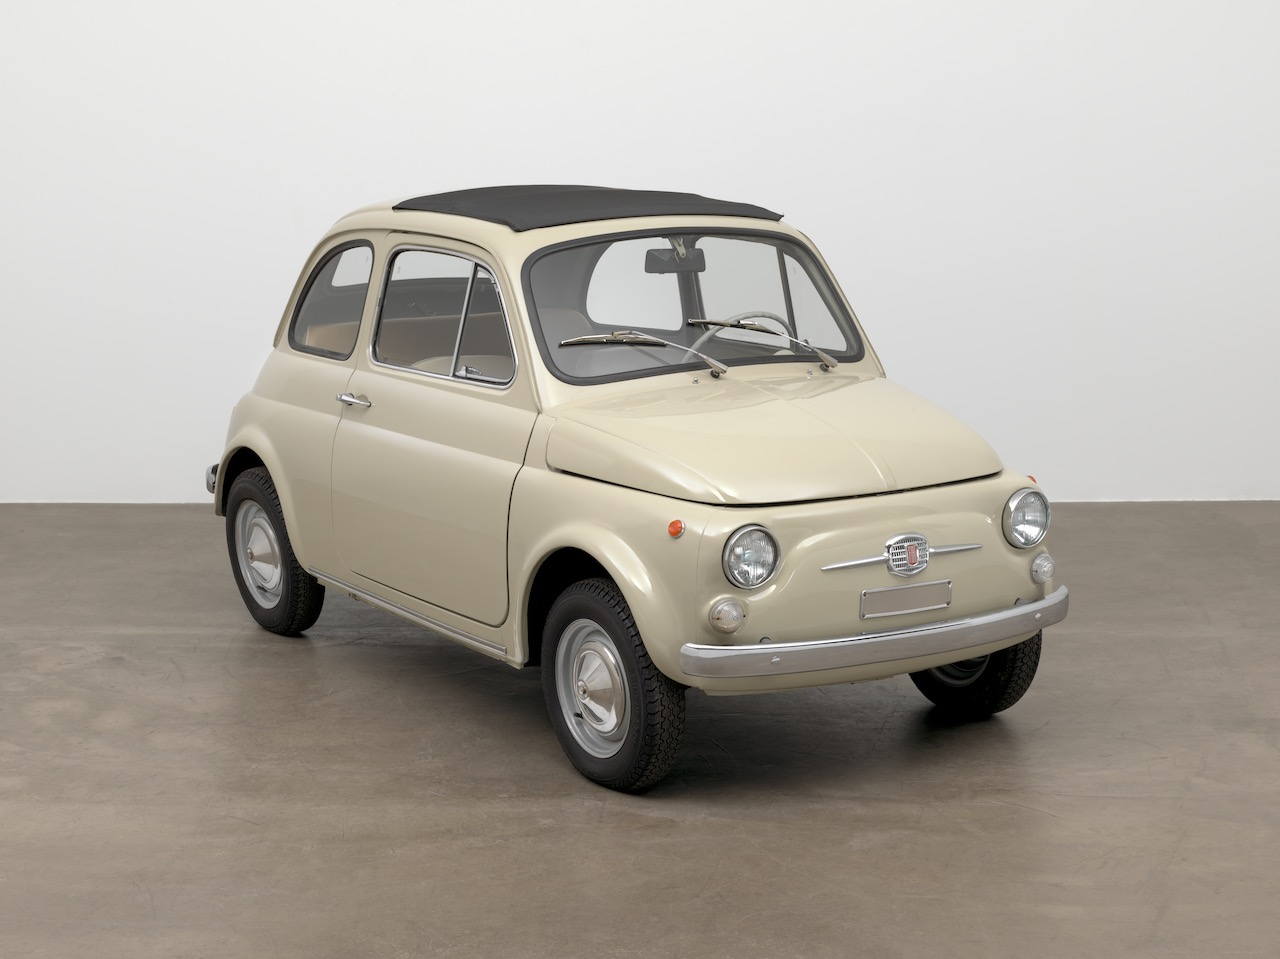 Fiat 500 goes on display at the New York Museum of Modern Art